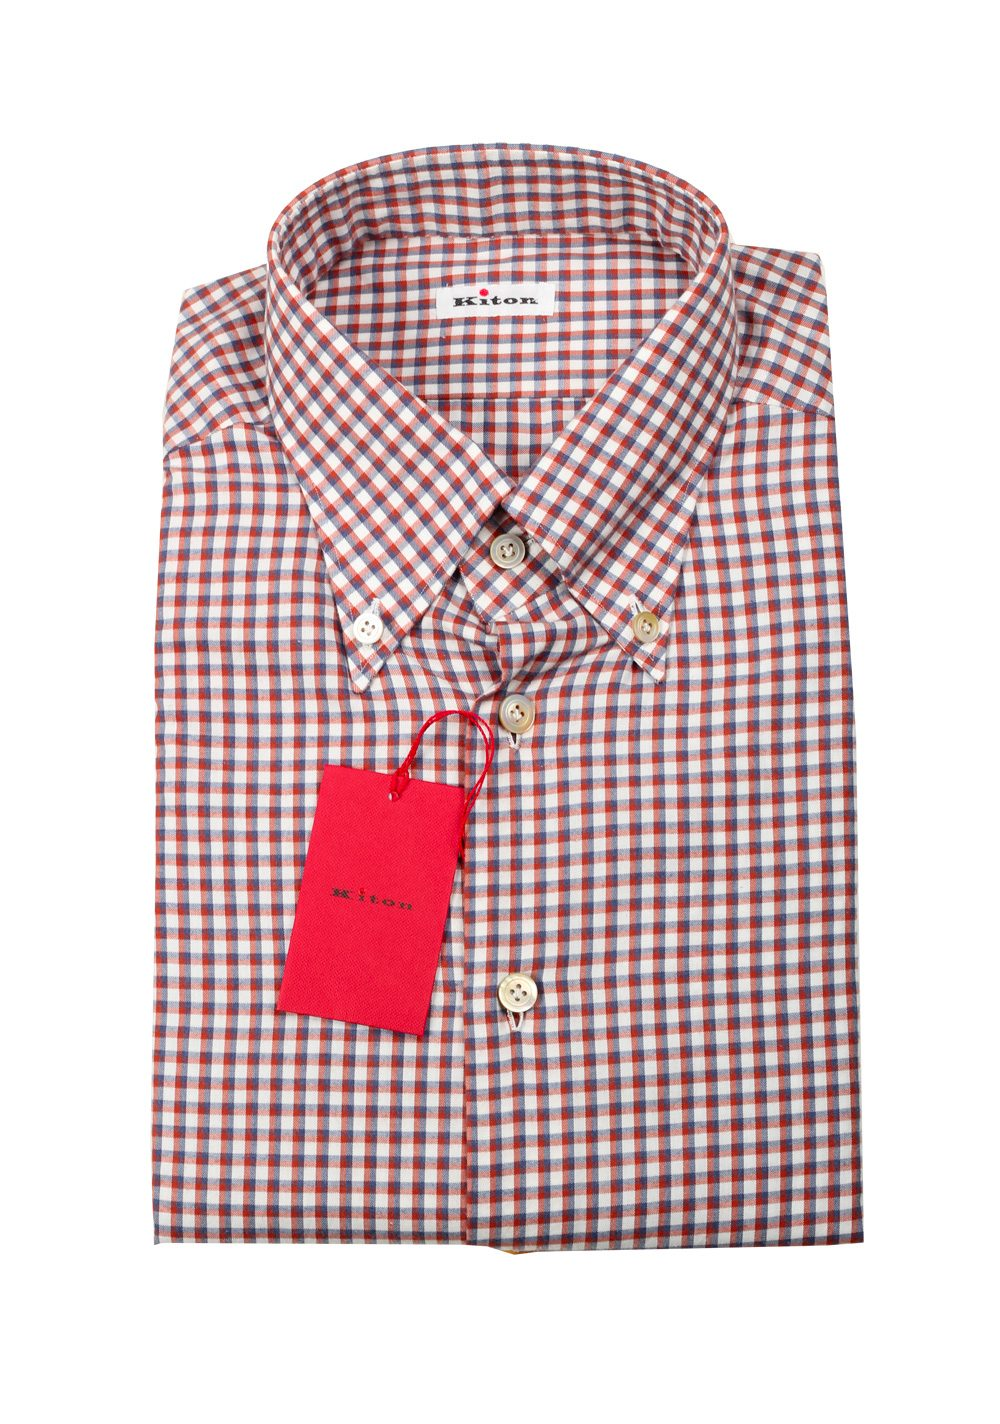 Kiton Checked White Red Gray Shirt 42 / 16,5 U.S. | Costume Limité